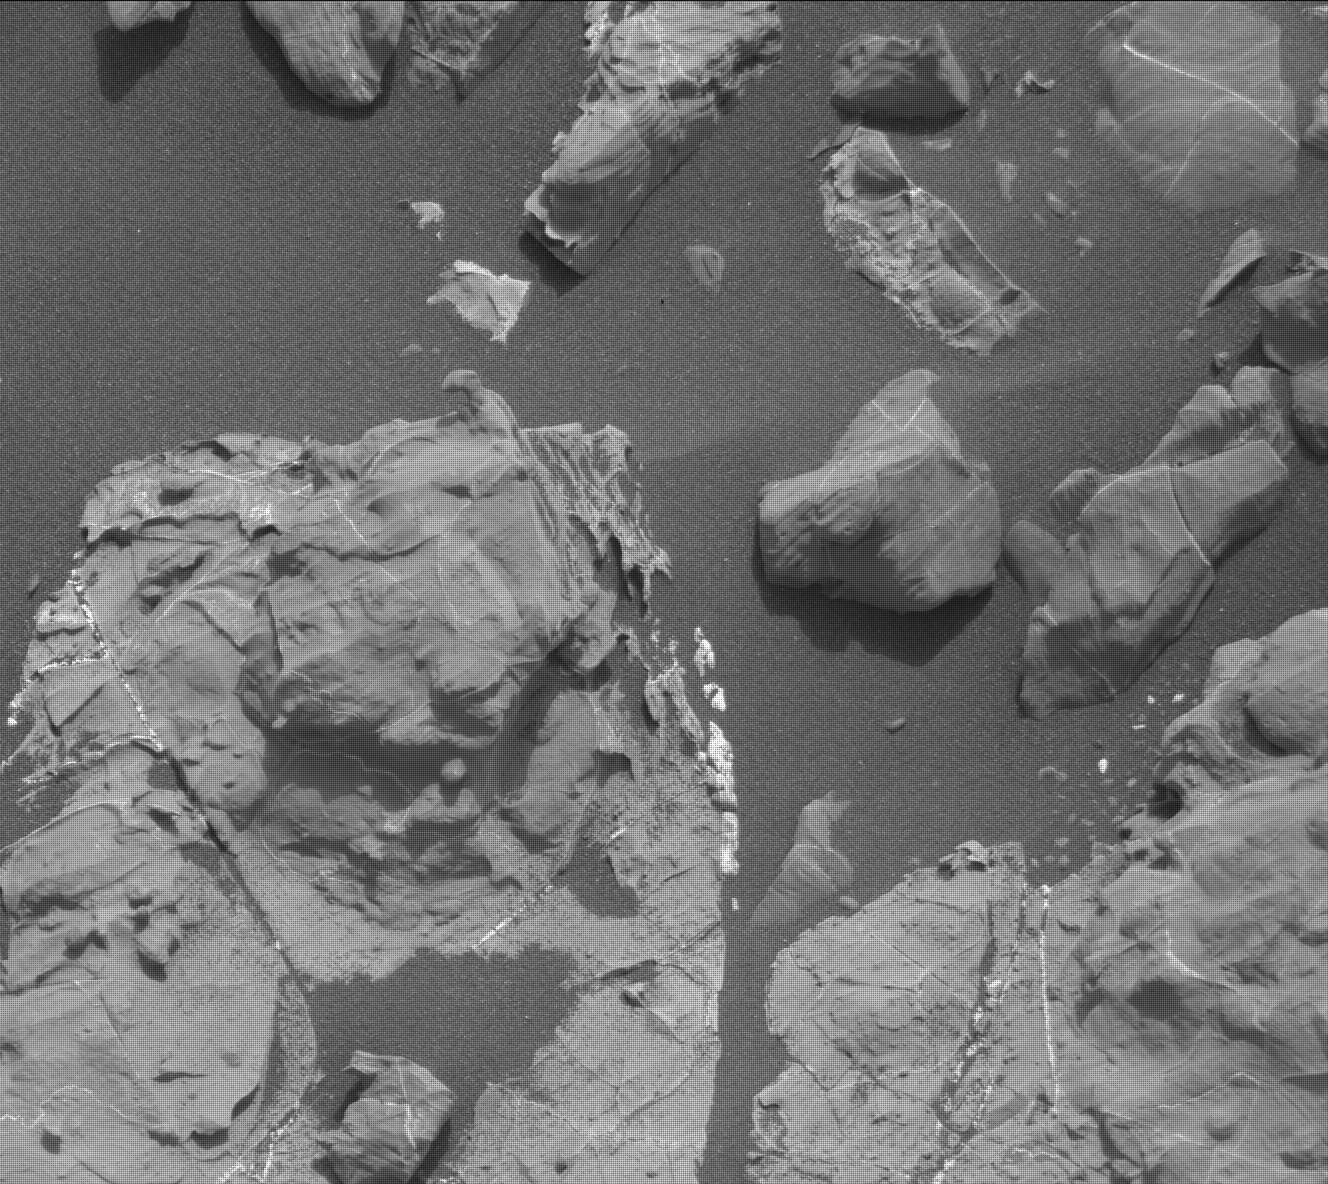 Nasa's Mars rover Curiosity acquired this image using its Mast Camera (Mastcam) on Sol 2165